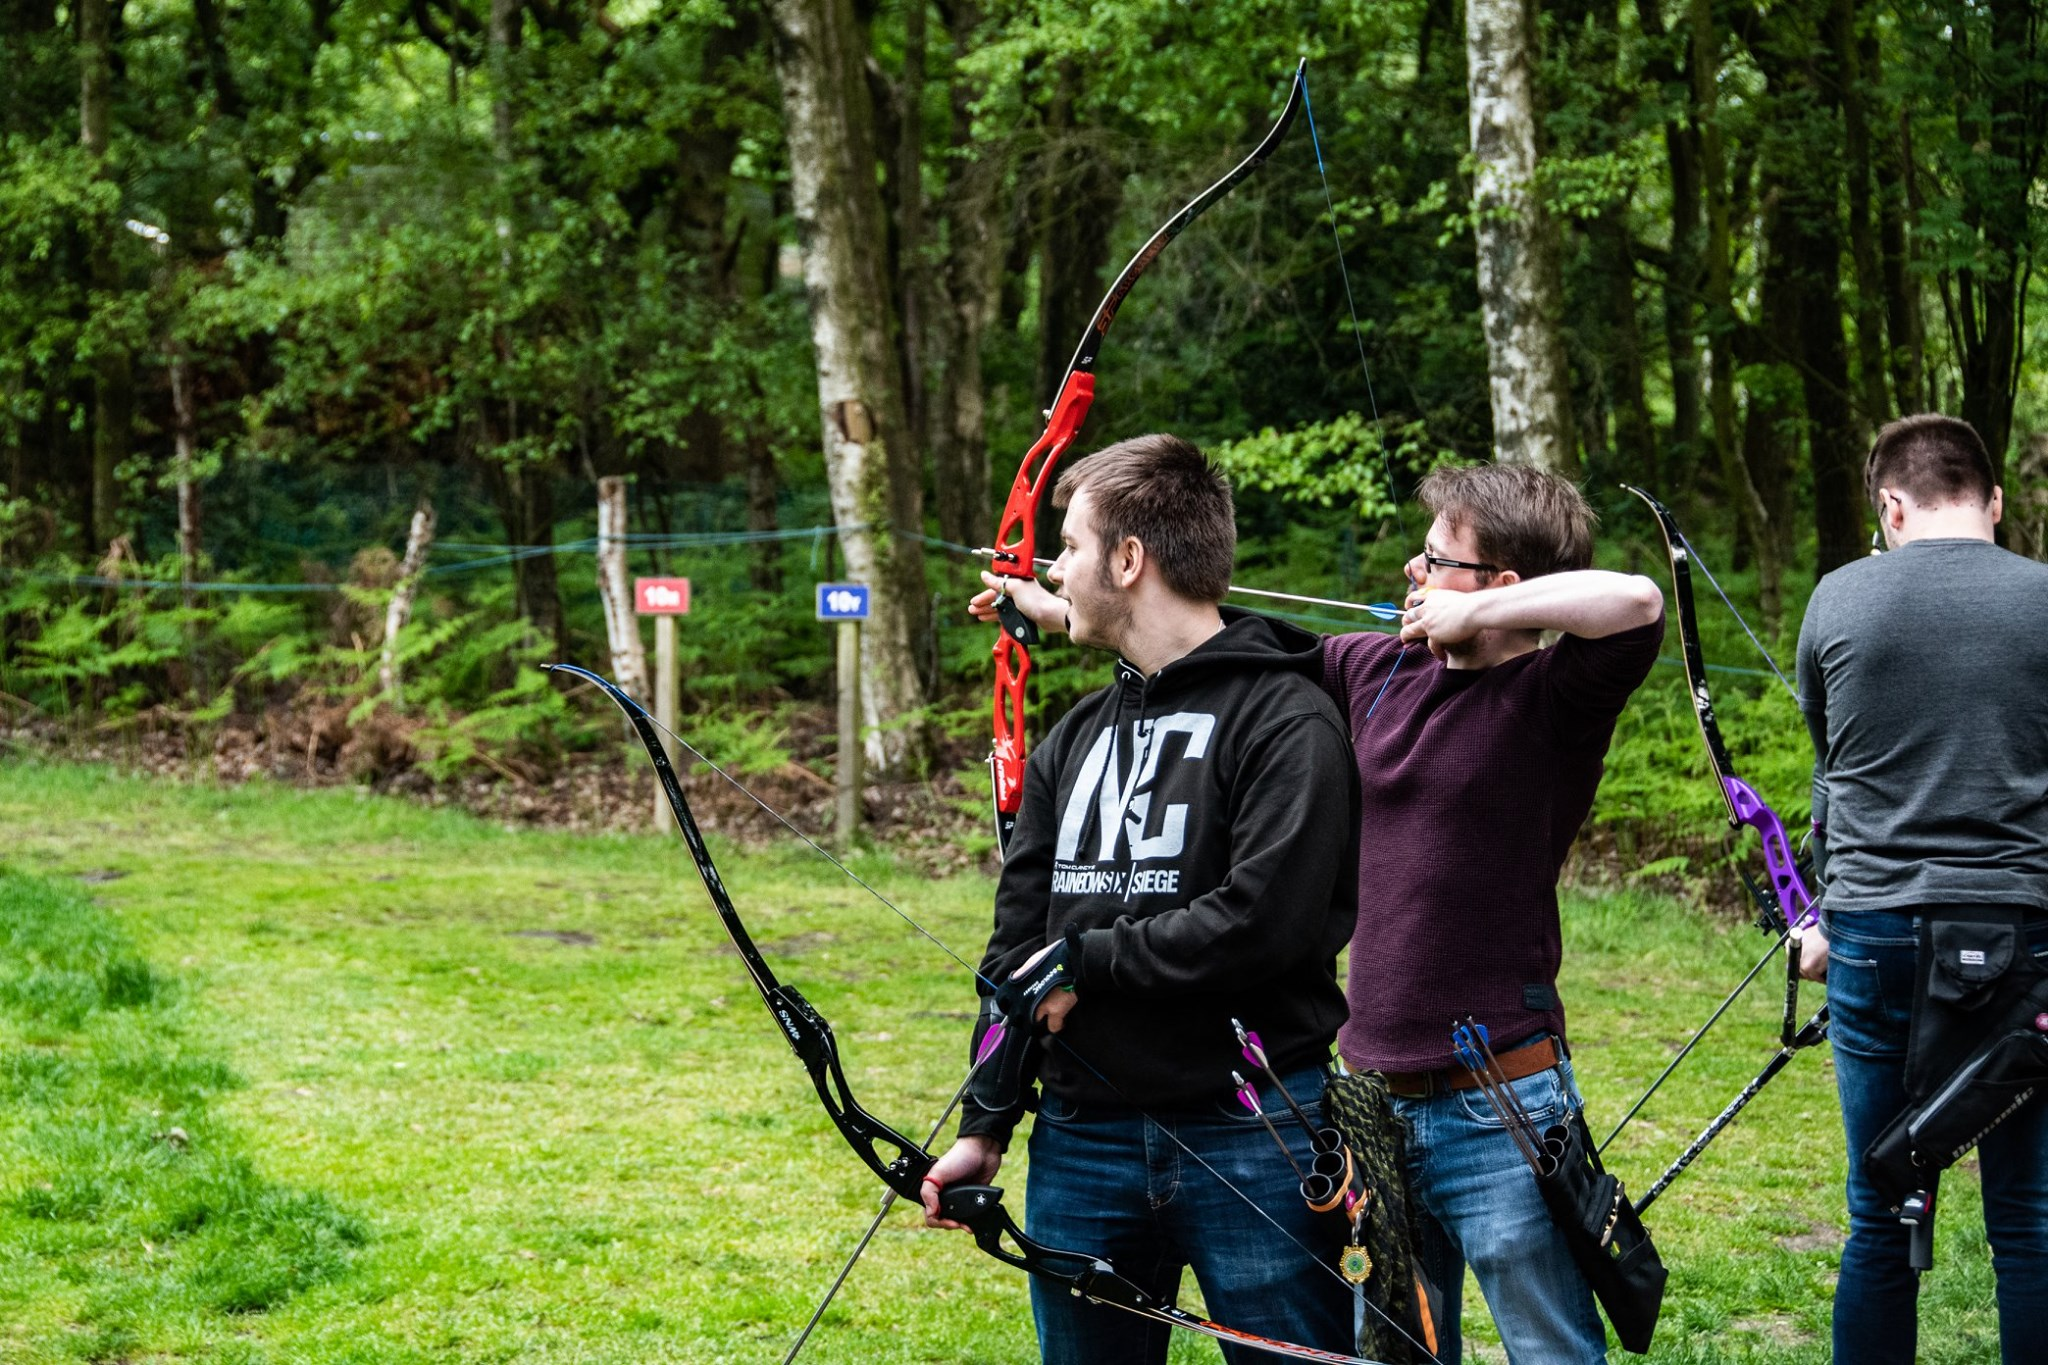 Inclusion and acceptance - We come from all walks of life to attend University, united by our love for Archery.